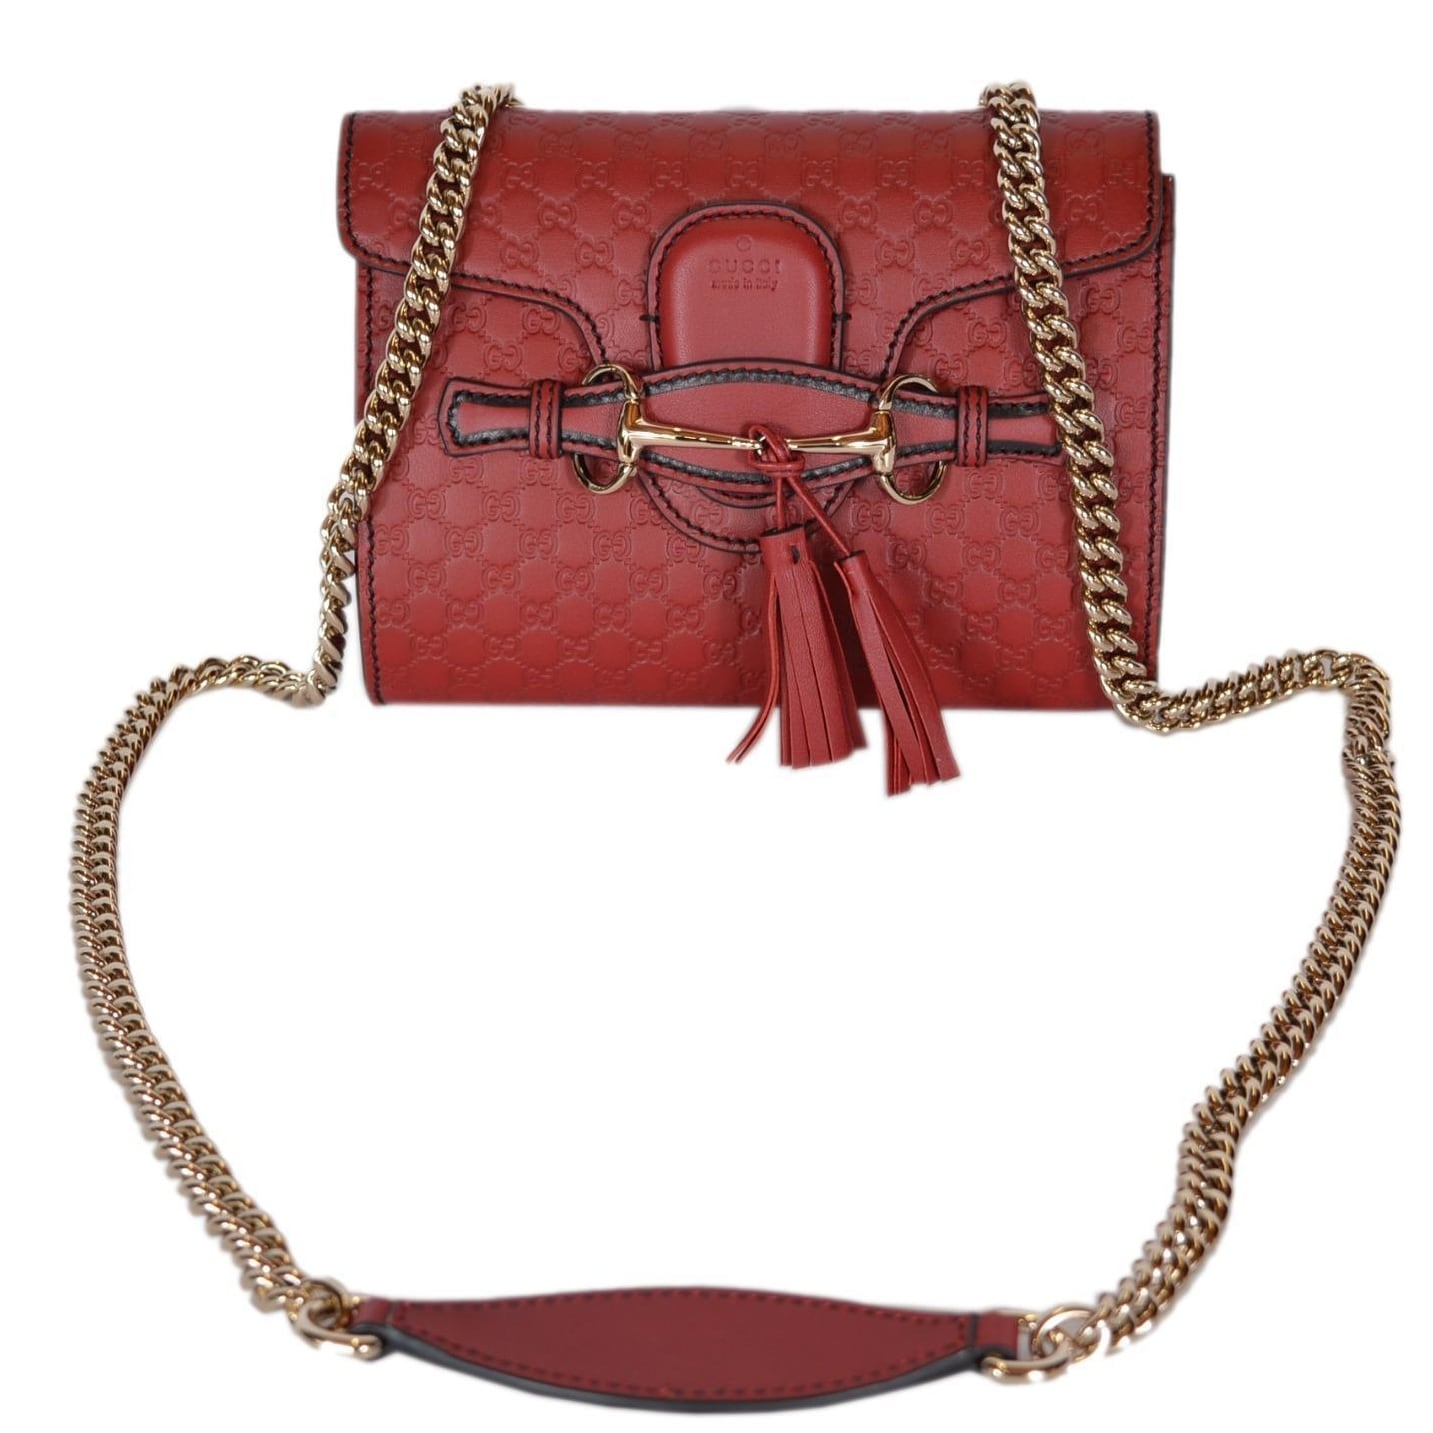 30649b7bf343cc Shop Gucci 449636 Red Micro GG Guccissima Leather MINI Emily Crossbody Purse  - Free Shipping Today - Overstock - 20919619